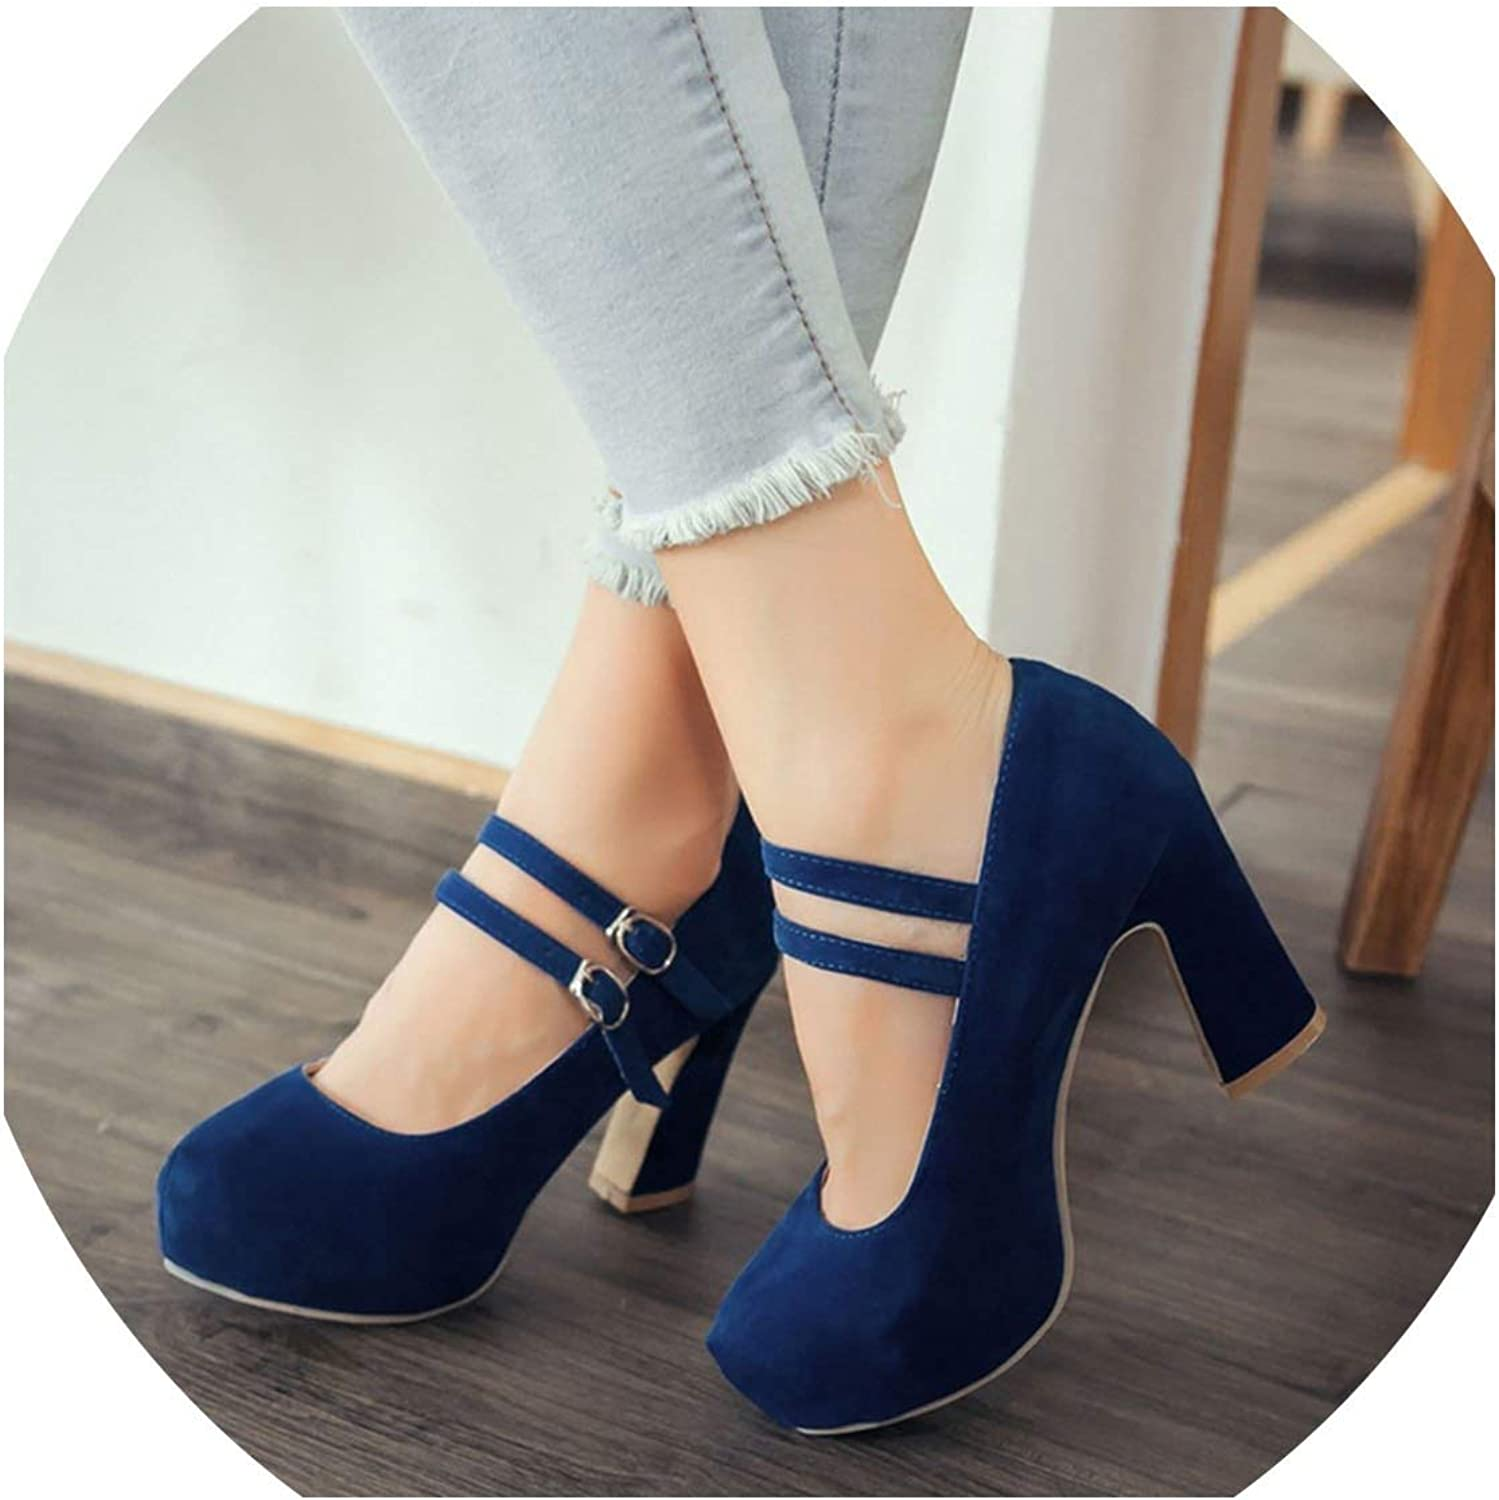 YP-fashion Large Size 34-43 Women shoes Woman high Heels Elegant Buckle Strap Office Lady Party Wedding Pumps